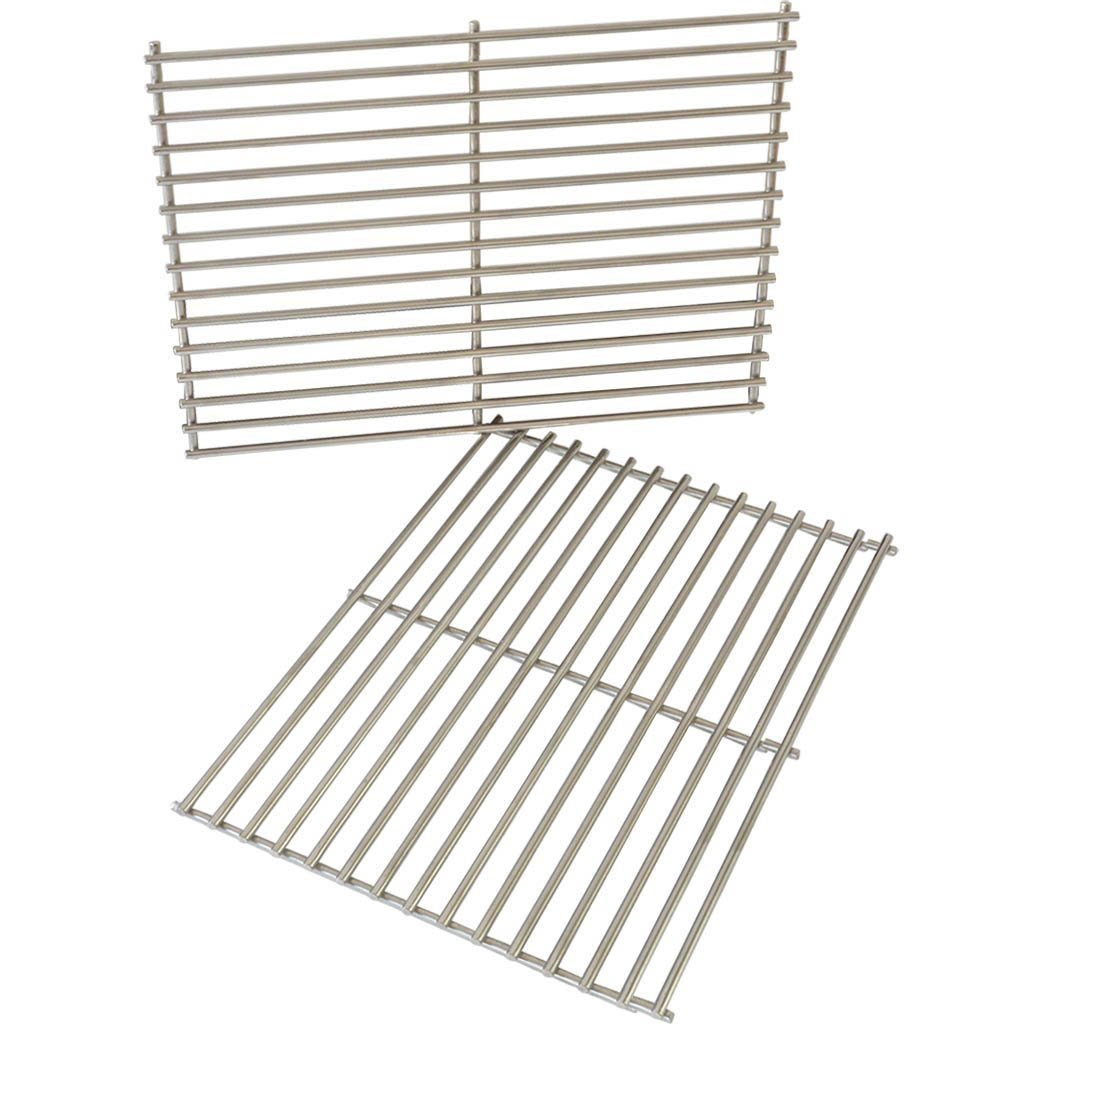 Onlyfire Replacement BBQ Stainless Steel Cooking Grill ROD Grid Grates for Weber 7528 Spirit and Genesis E and S seriesModels Grill, Set of 2 8506